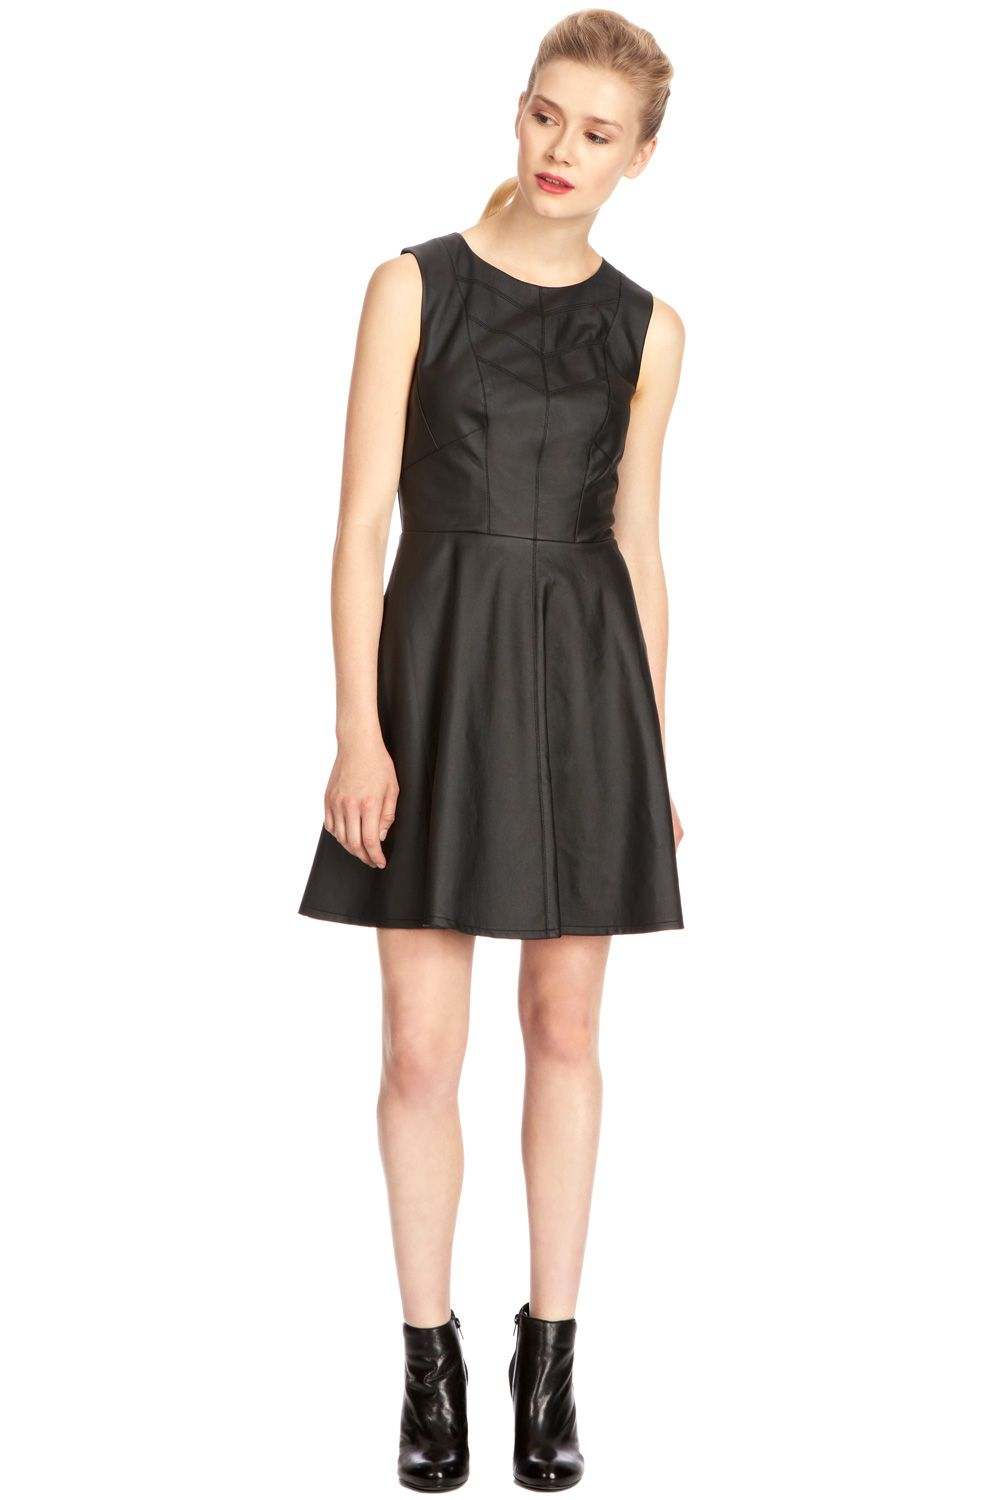 Sophia pleat faux leather dress